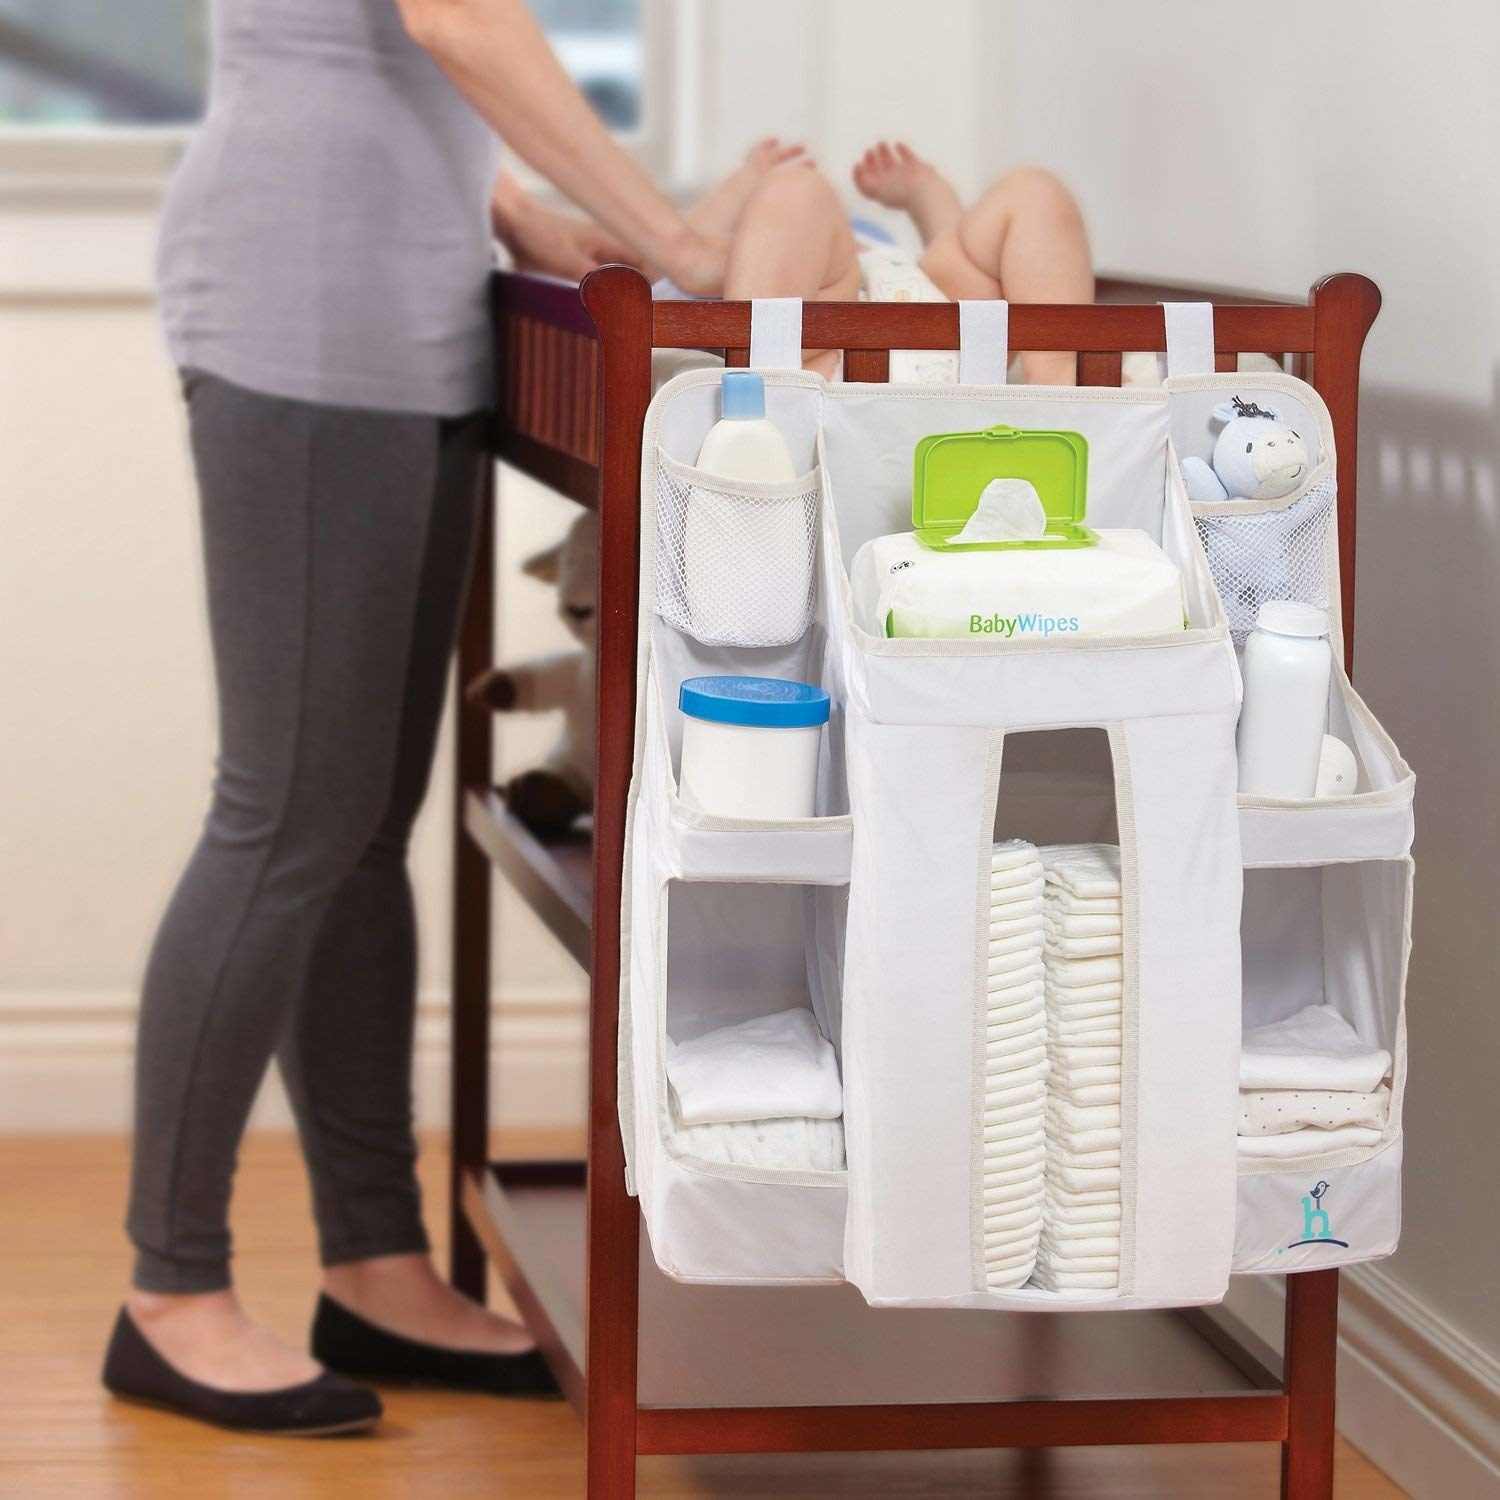 The diaper caddy attached to the side of a changing table